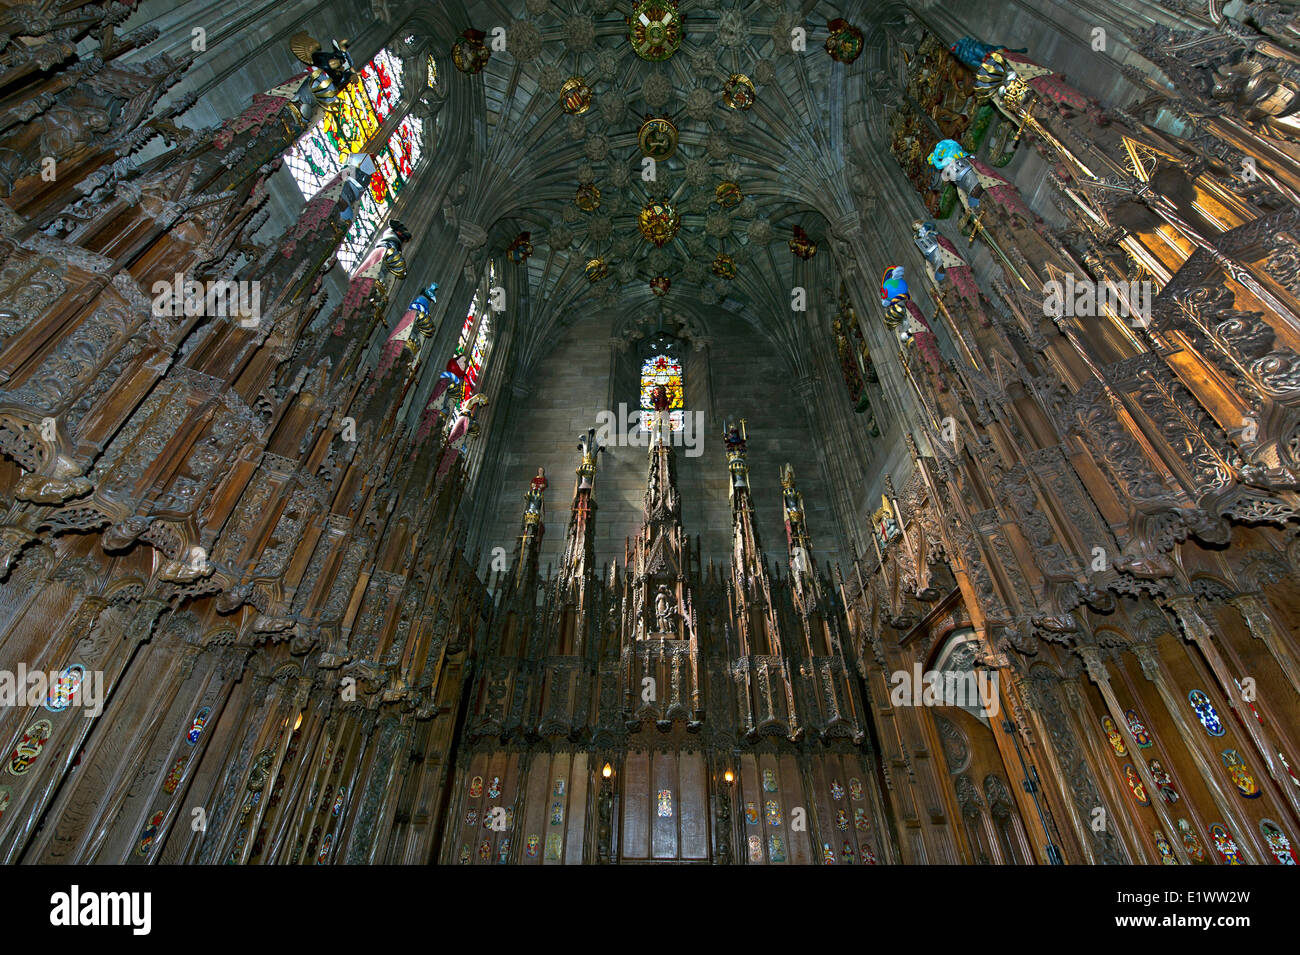 Interior with carved wooden walls of Thistle Chapel in St. Giles' Cathedral in Edinburgh, Scotland, UK - Stock Image